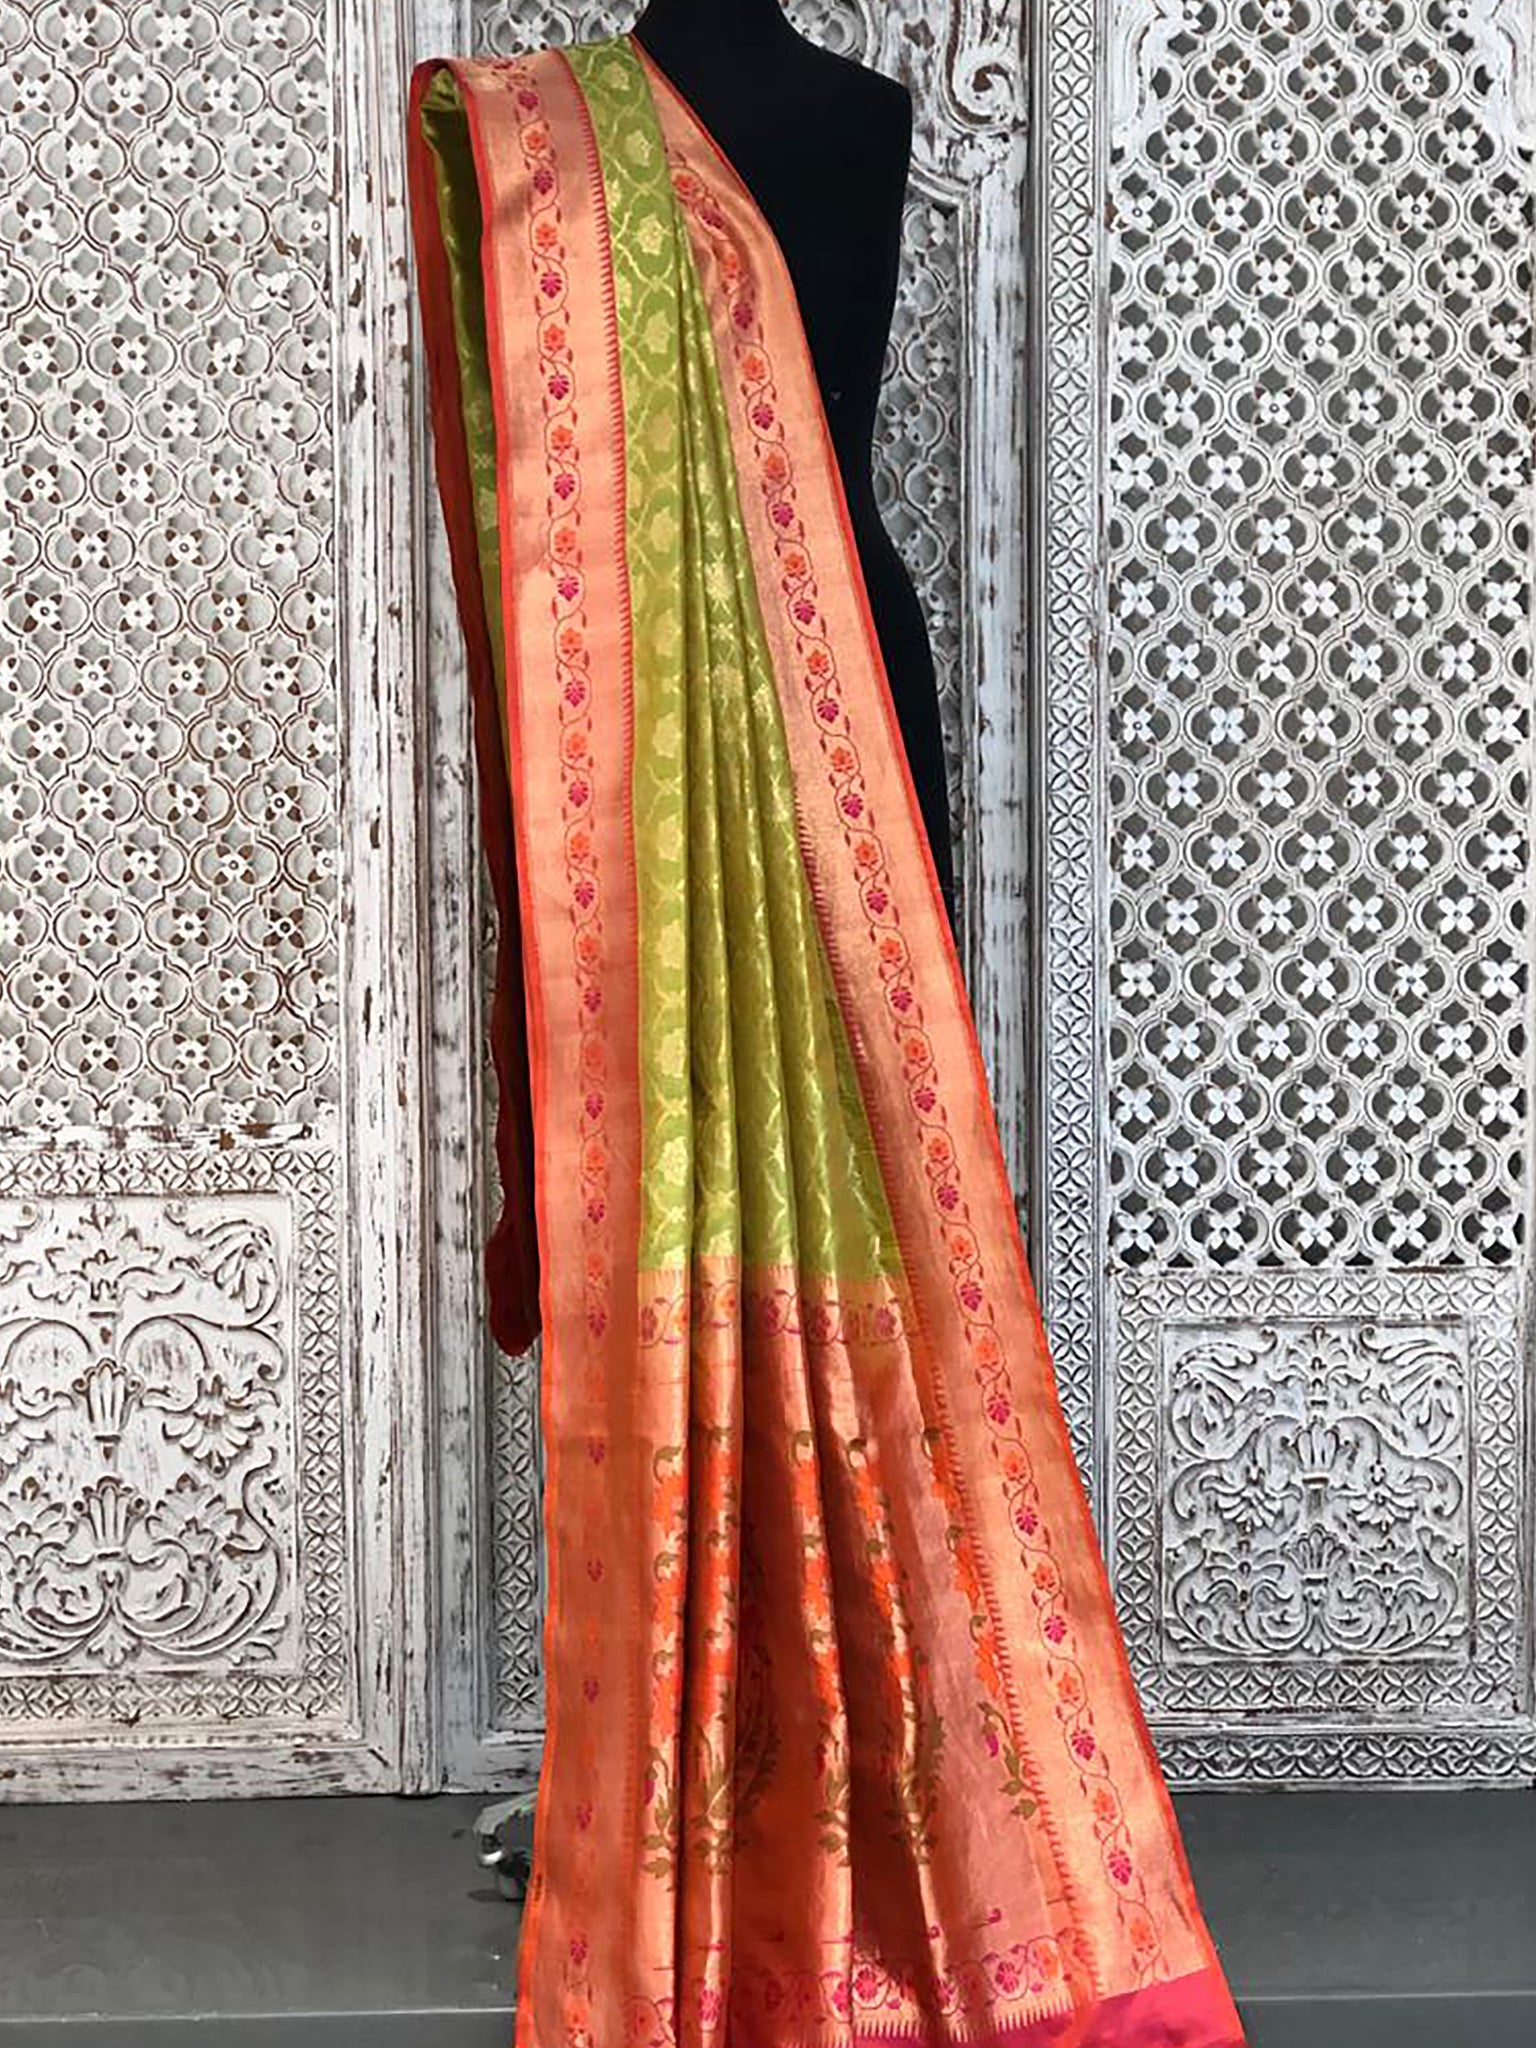 Green with Orange Banarasi Saree with Self Resham Jall in Body and Contract Orange Blouse